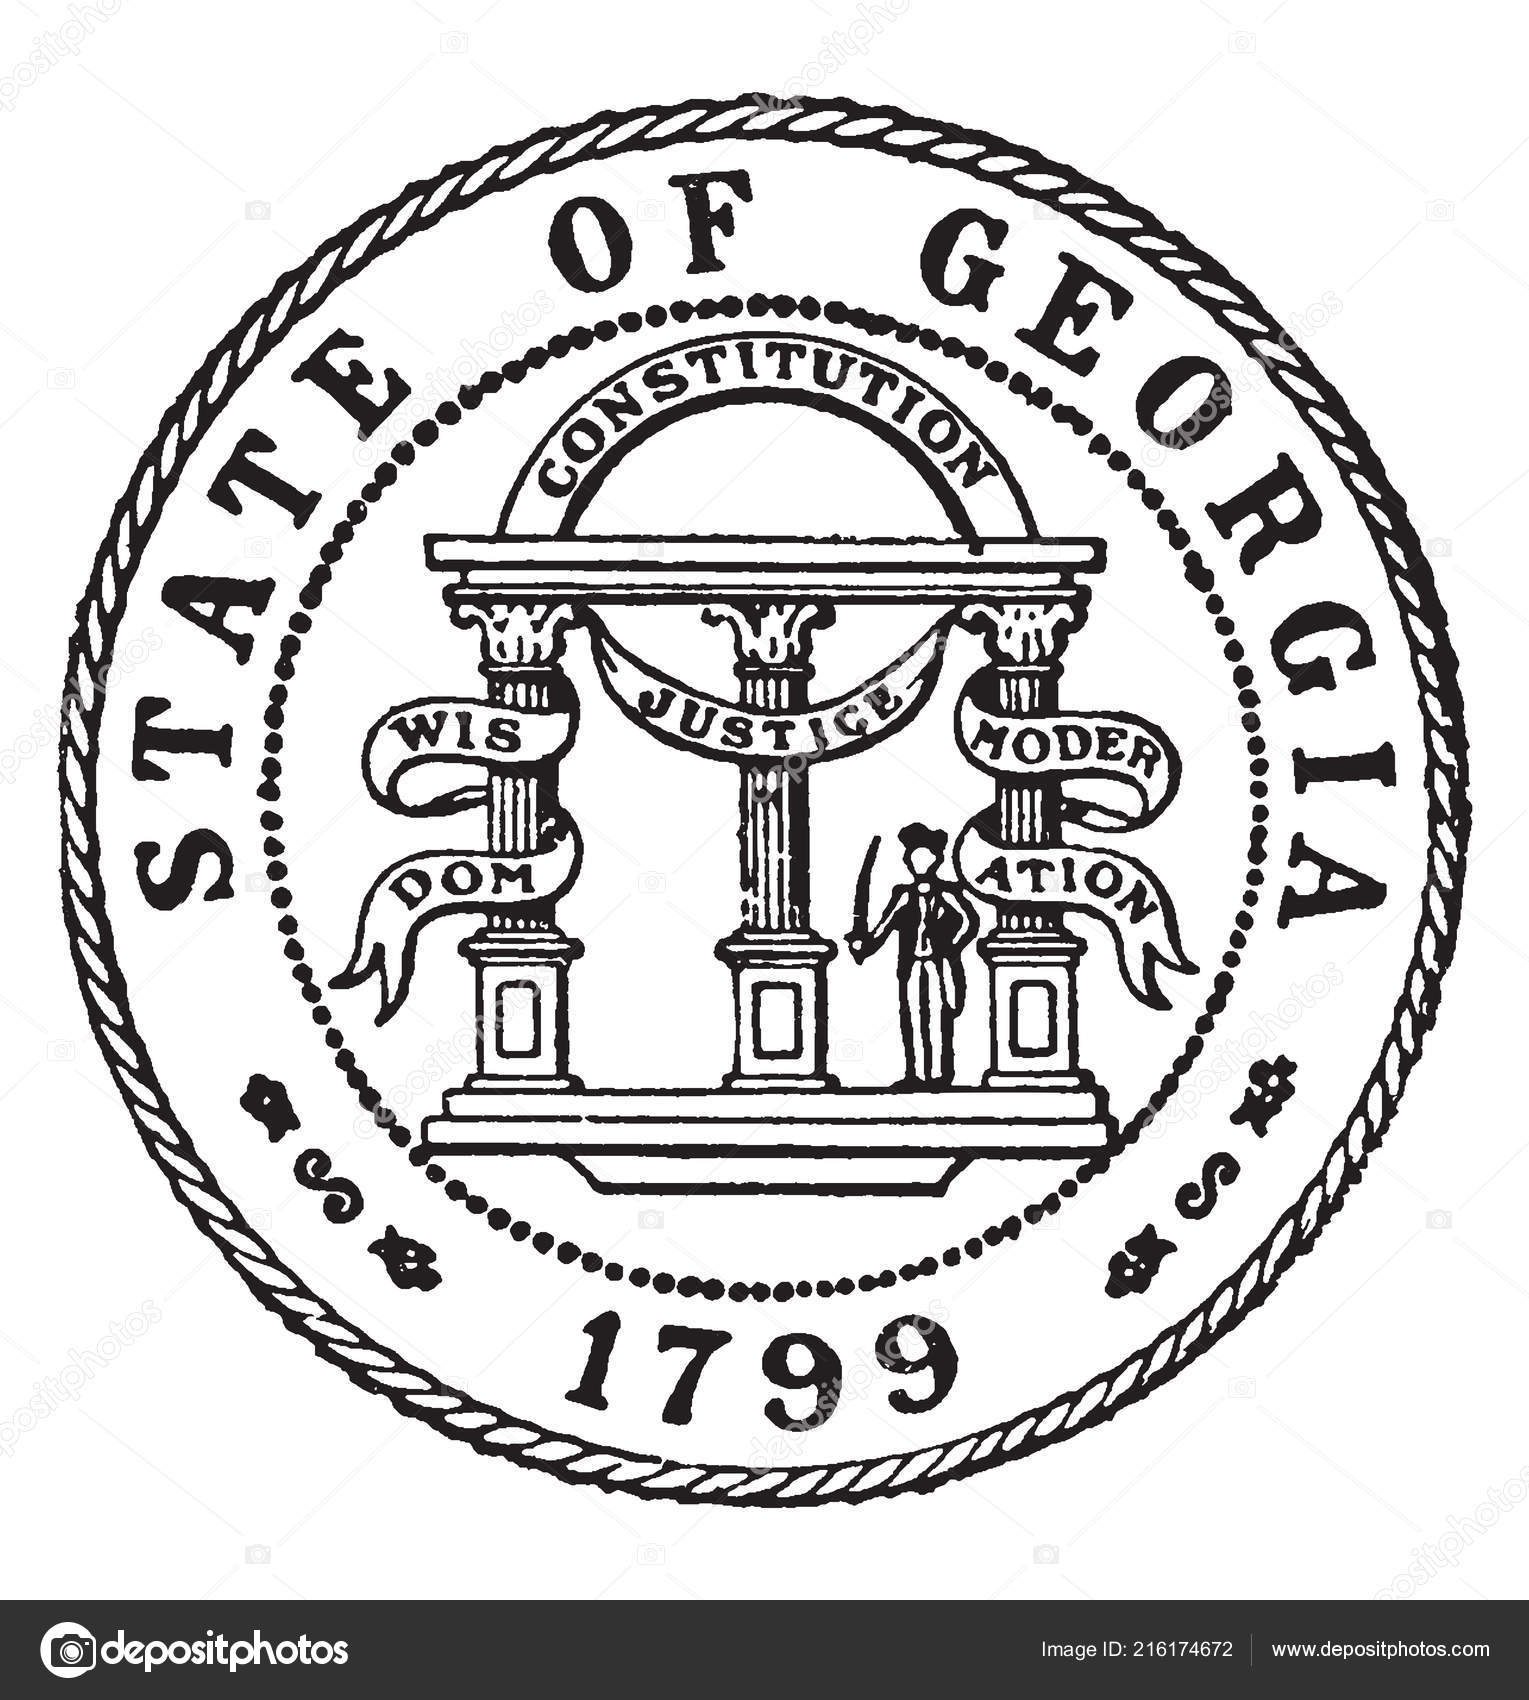 The Seal Of The State Of Georgia 1799 Seal Has An Arch With Three Coloumns With Banners Which Read Wisdom Justice And Moderation And A Sol R With